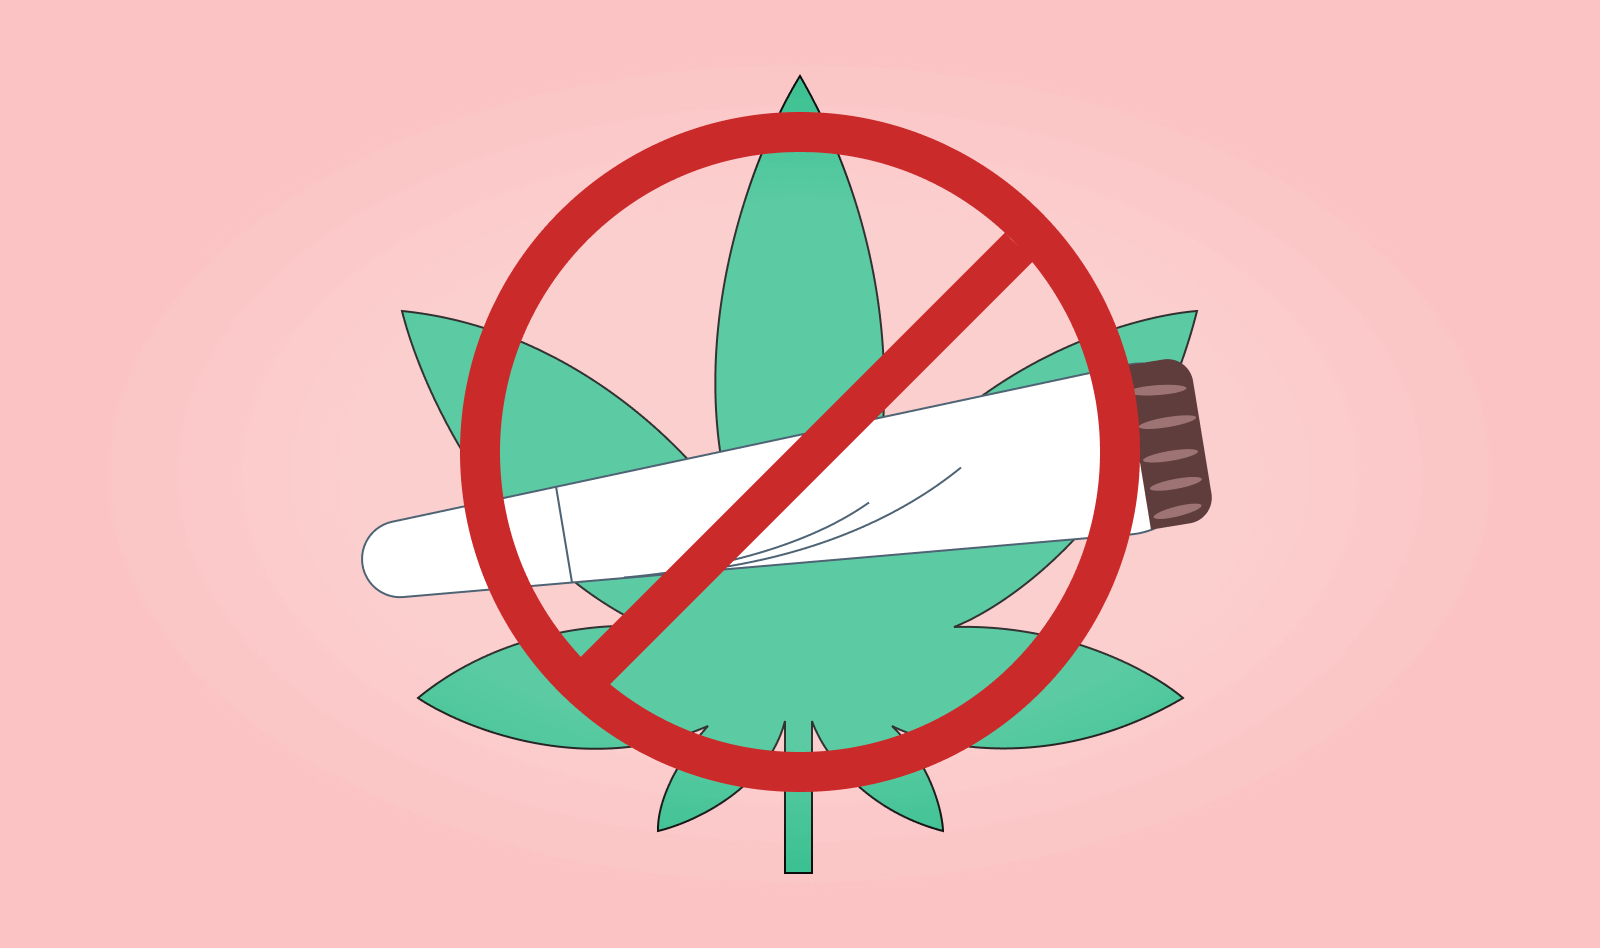 A Cannabis leaf and joint with a large red cross through it